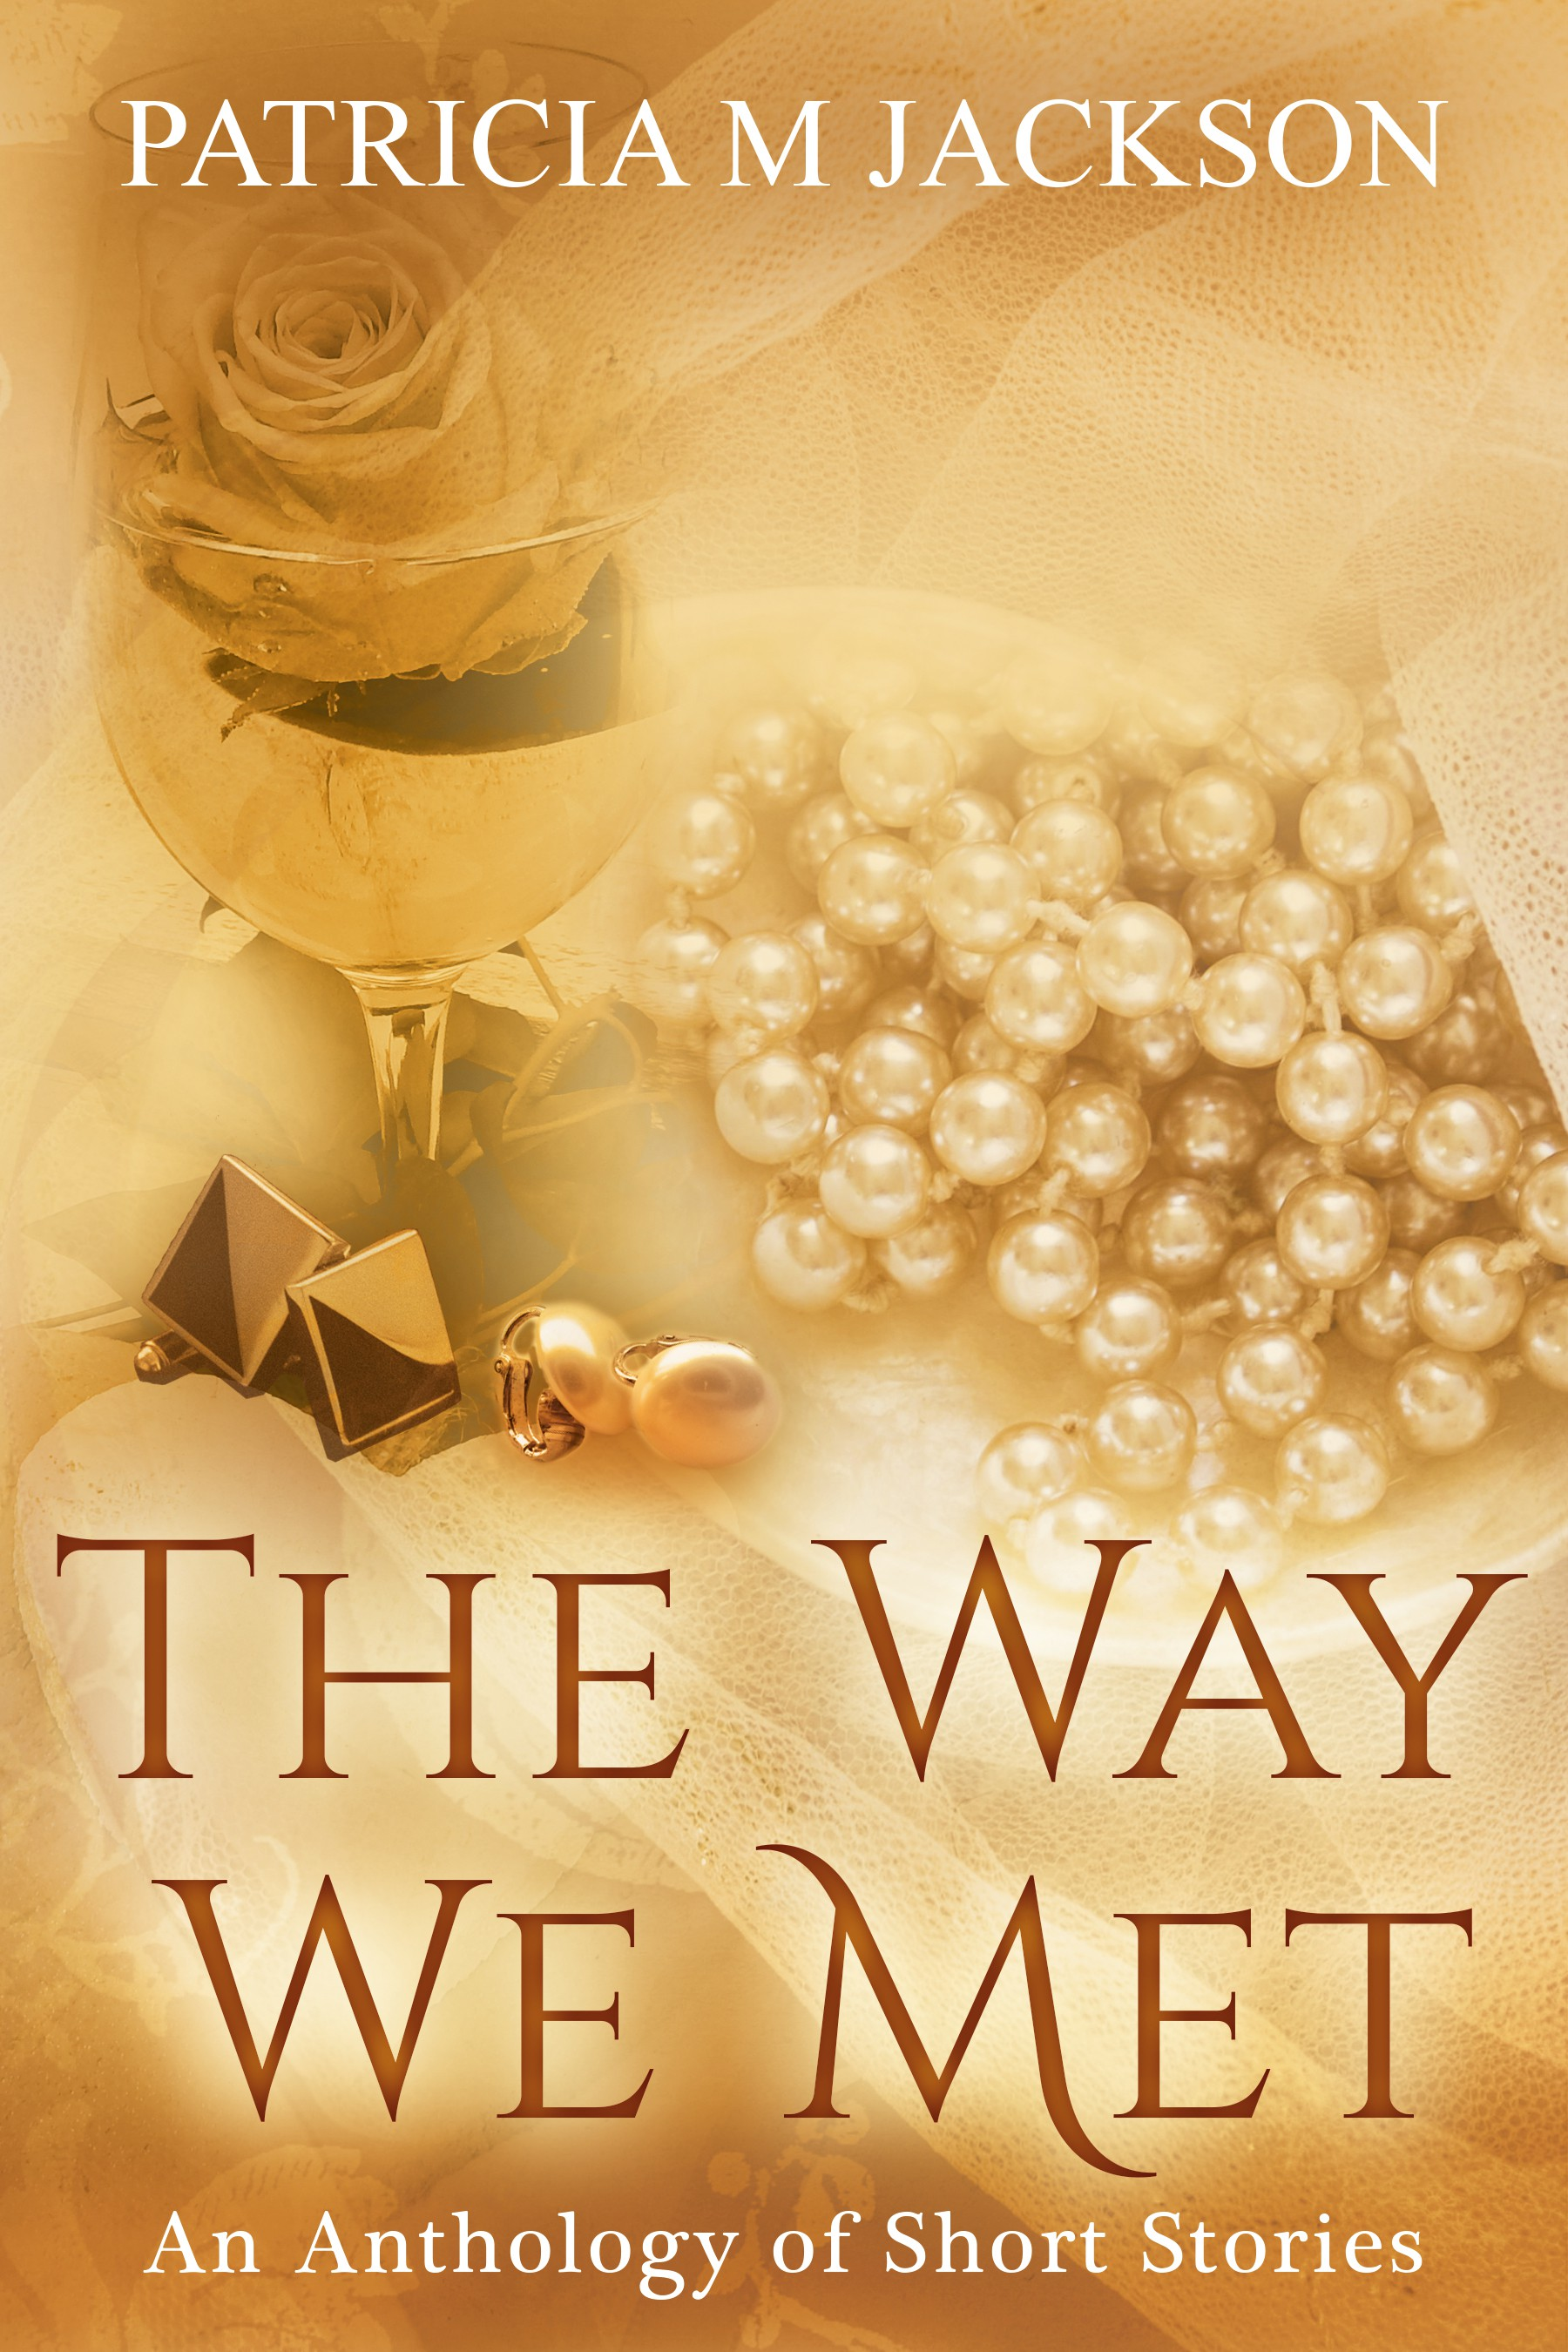 Cover for romance anthology: The Way We Met - stories of real couples